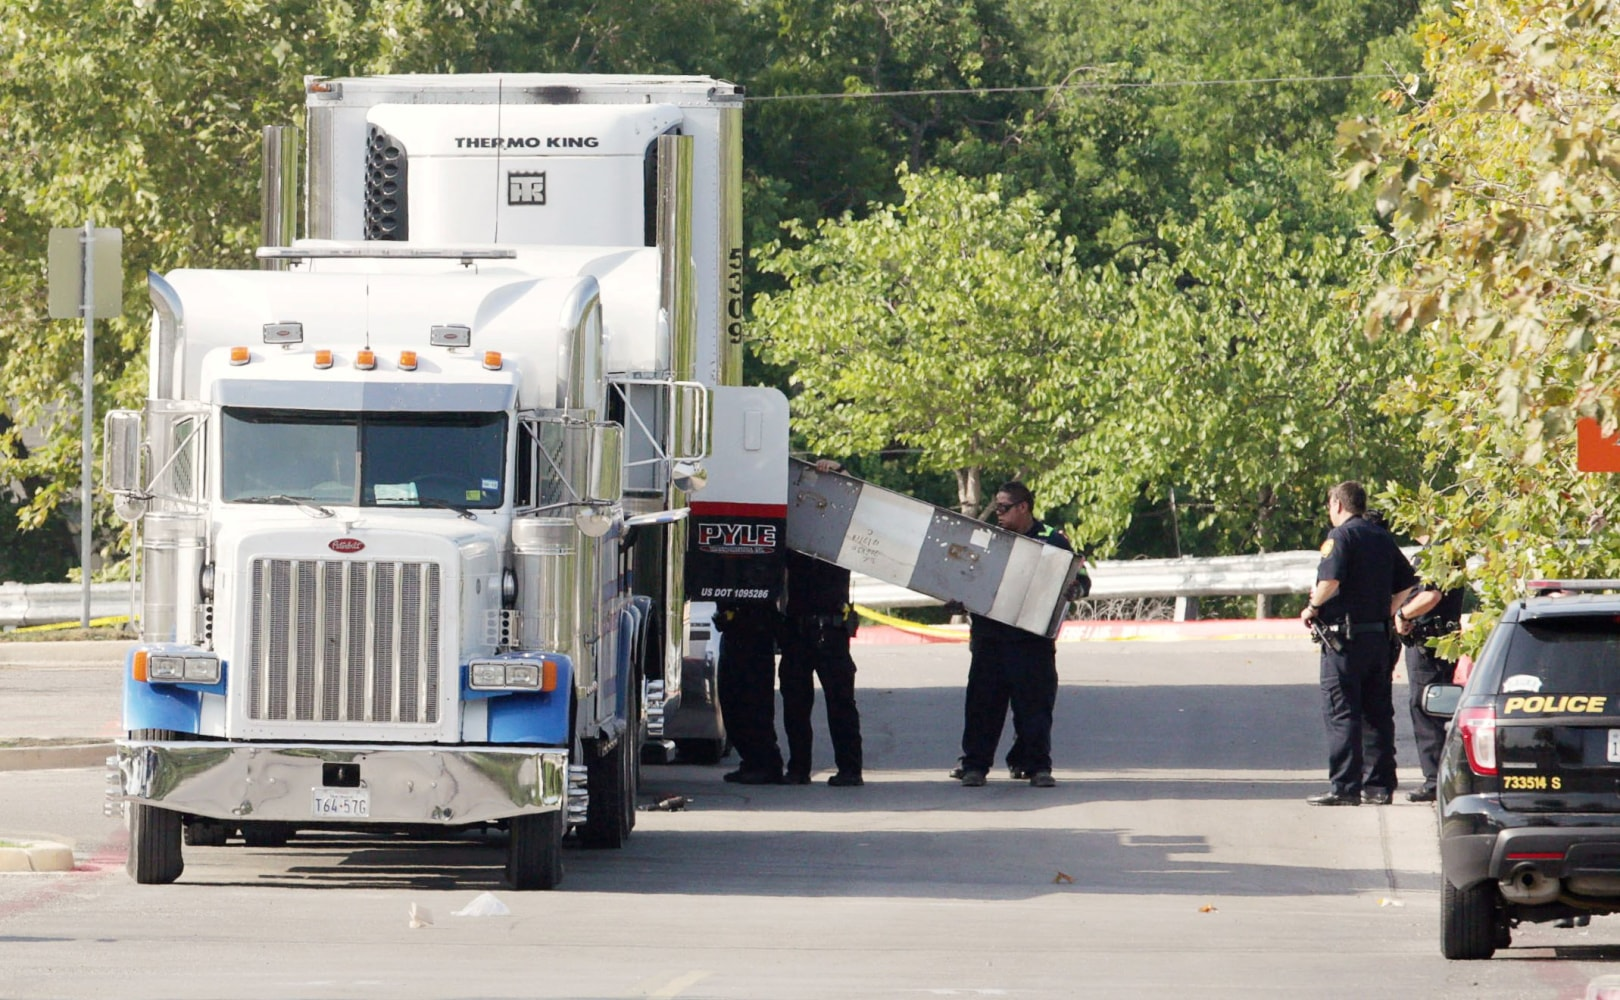 Eight people found dead in back of truck parked in Texas